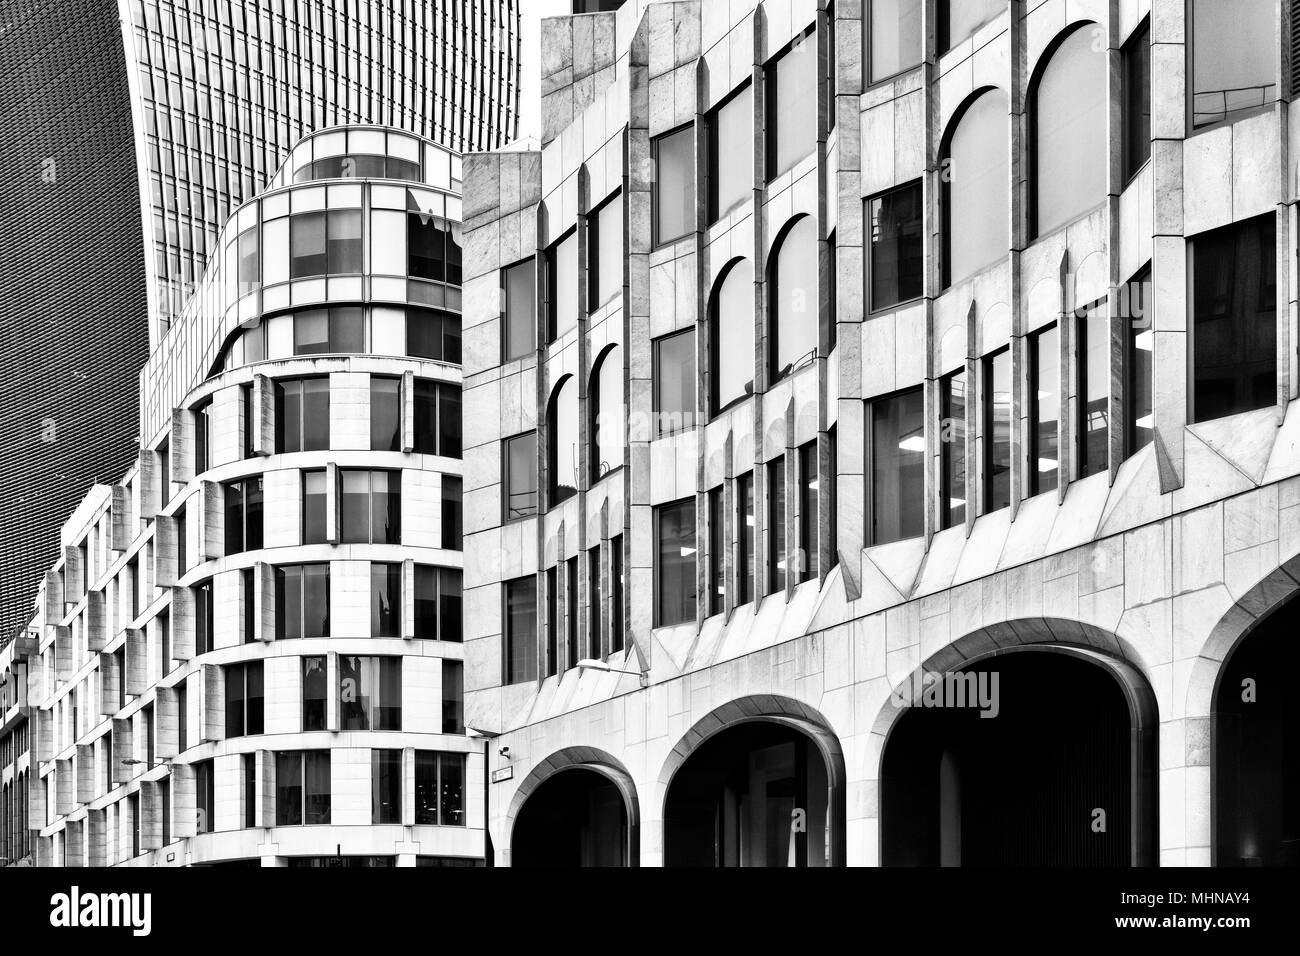 Old and new buildings abstract. Great Tower Street, London, England. Black and white - Stock Image